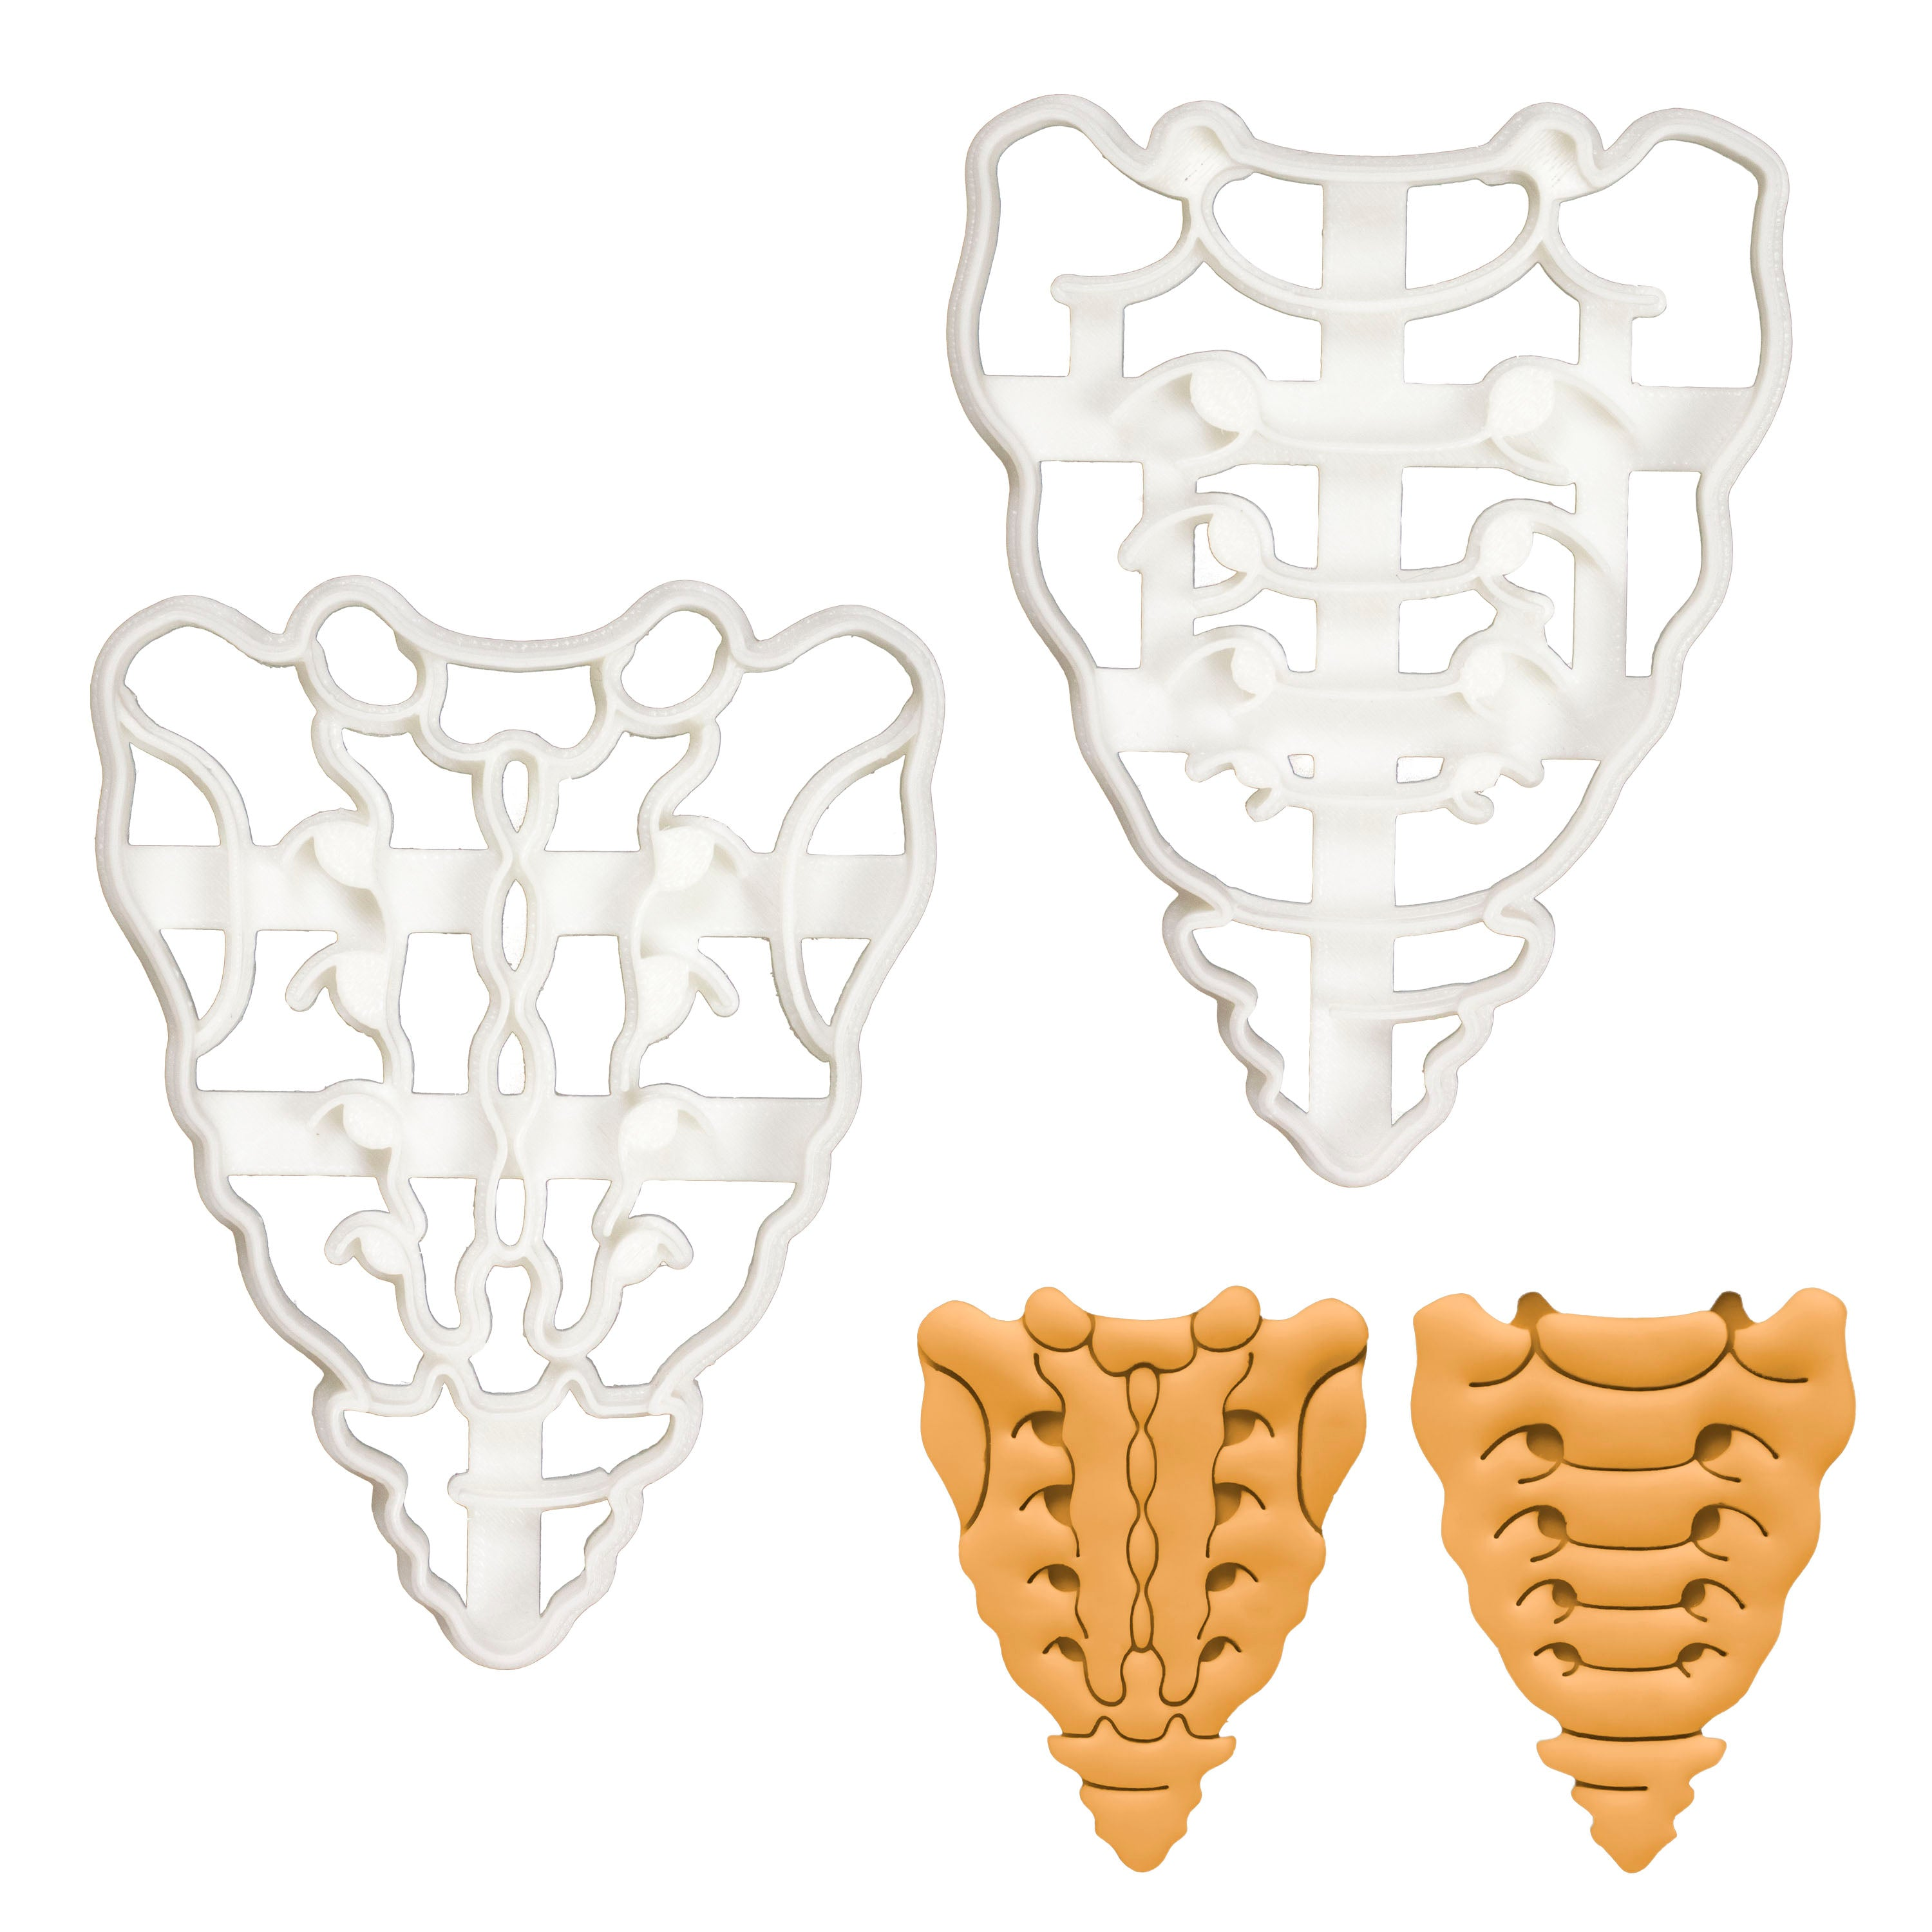 Set of 2 Sacrum and Coccyx cookie cutters (Designs: Anterior and Posterior)